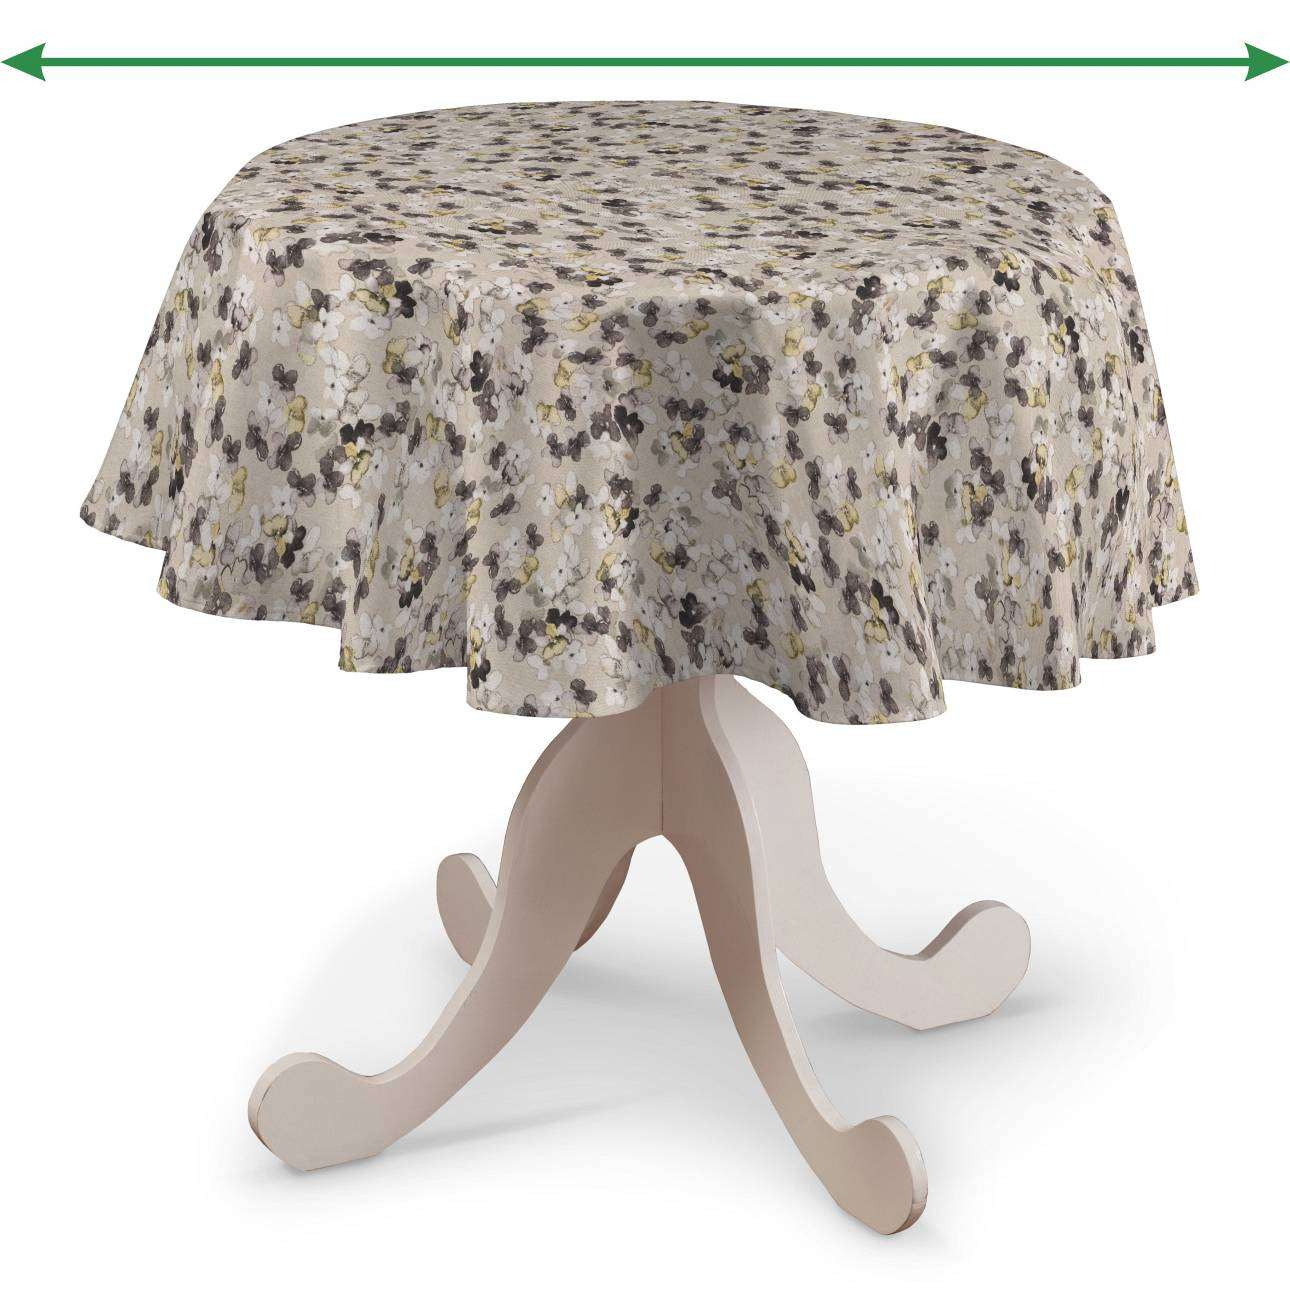 Round tablecloth in collection SALE, fabric: 140-48